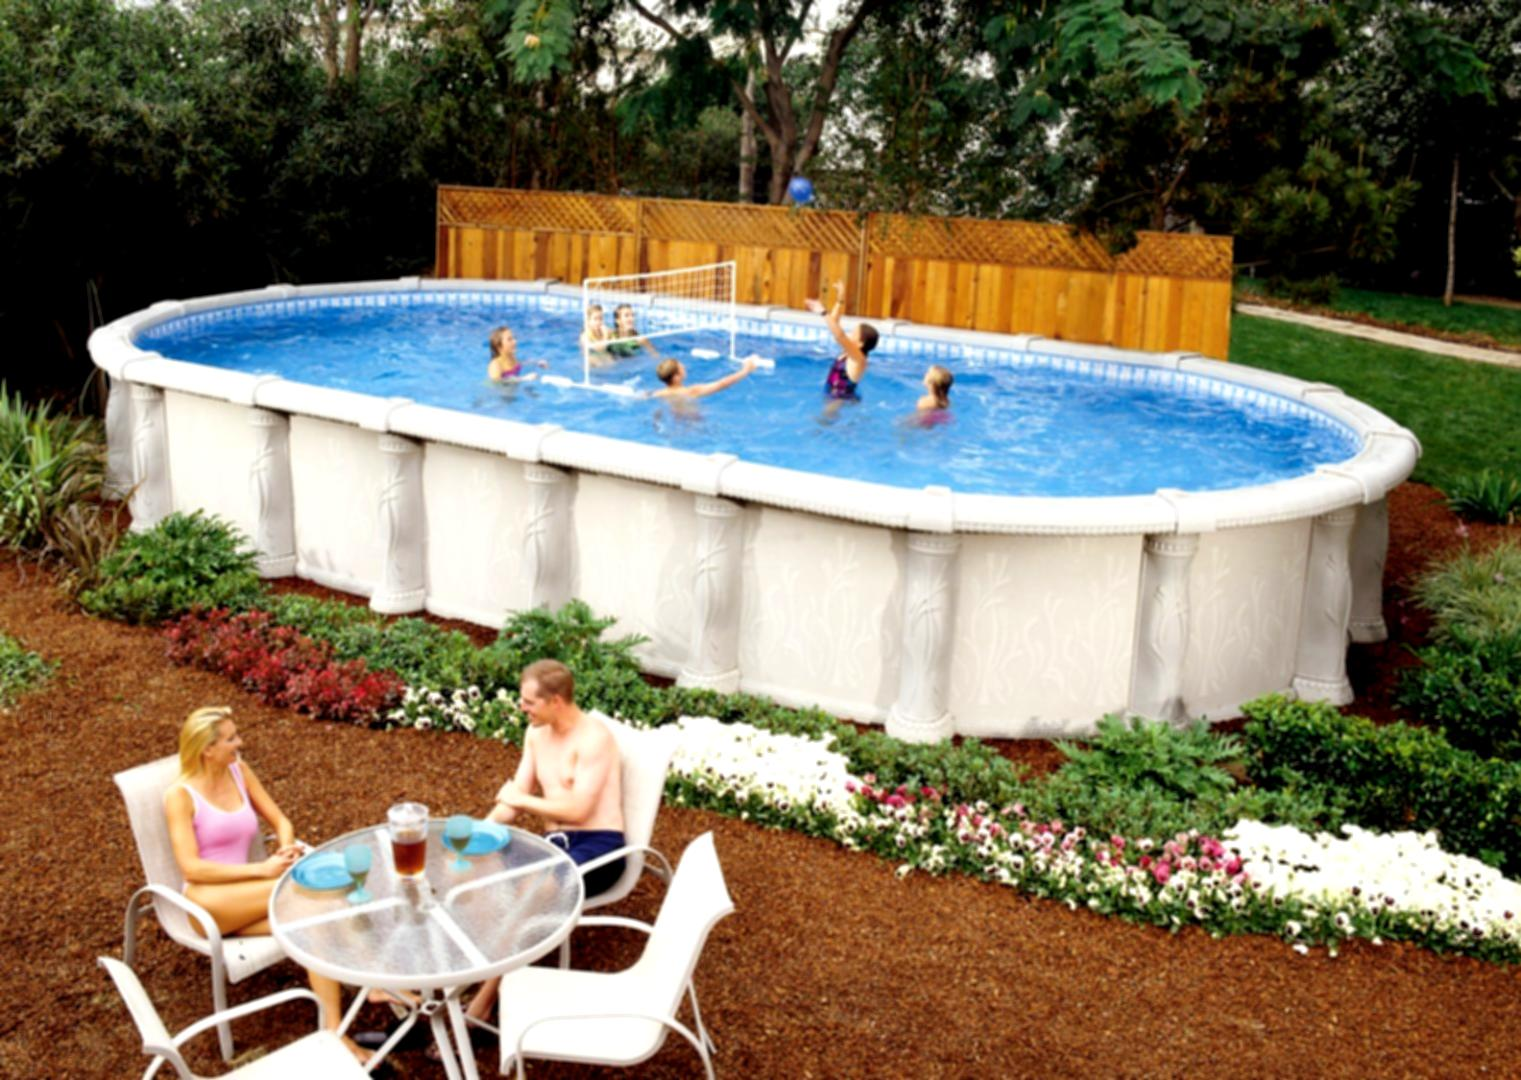 Above ground swimming pool installation companies - Swimming pool installation companies ...